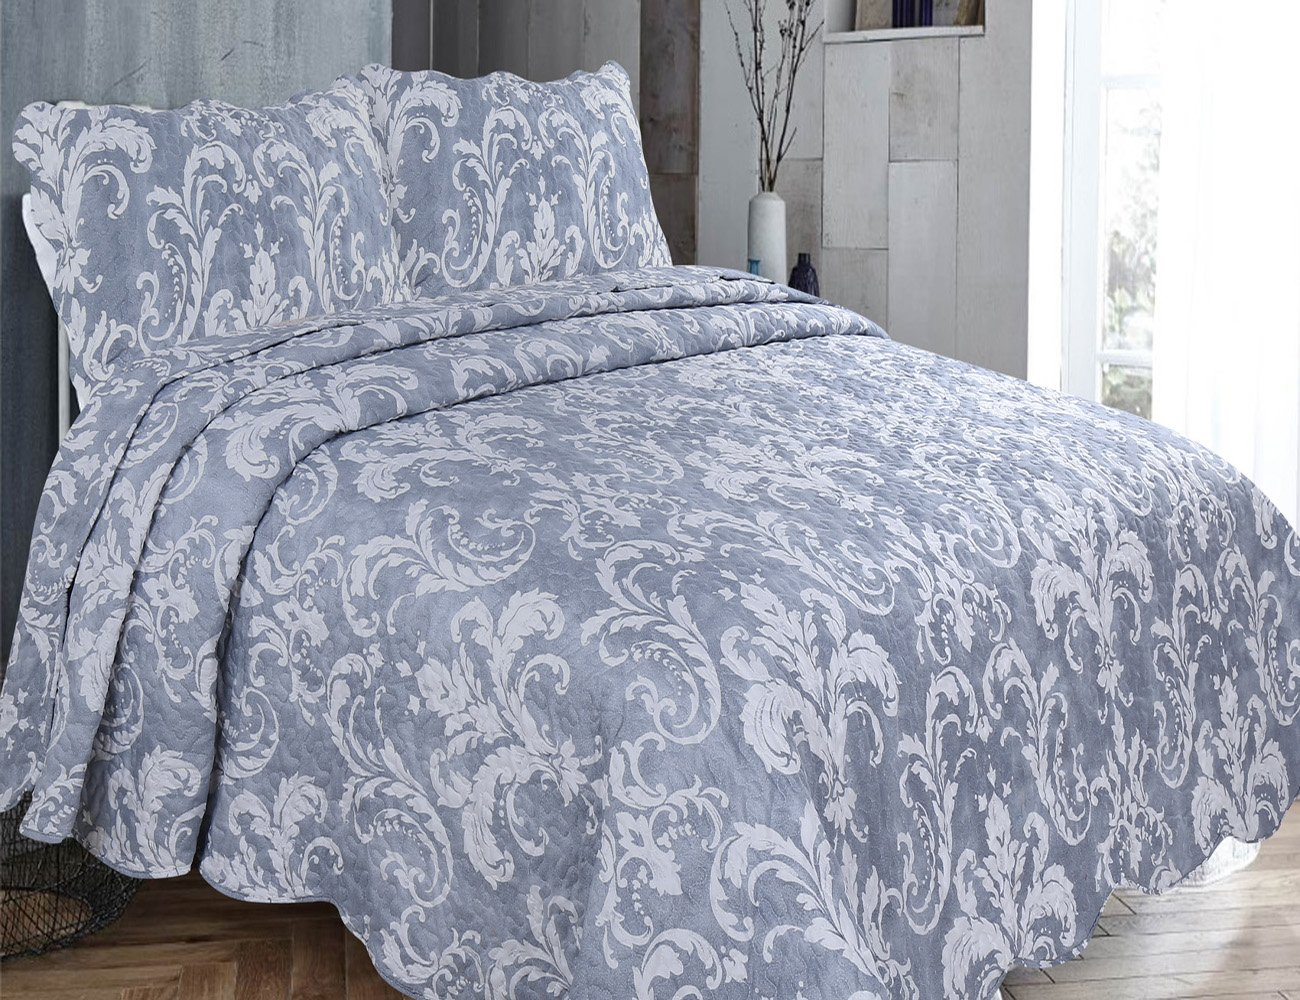 BedSpread Bed Throws Comforter set With Pillow Shams Fits Double And King Size Bed Floral Reversible Polyester Luxury , Enigma Gray De Lavish